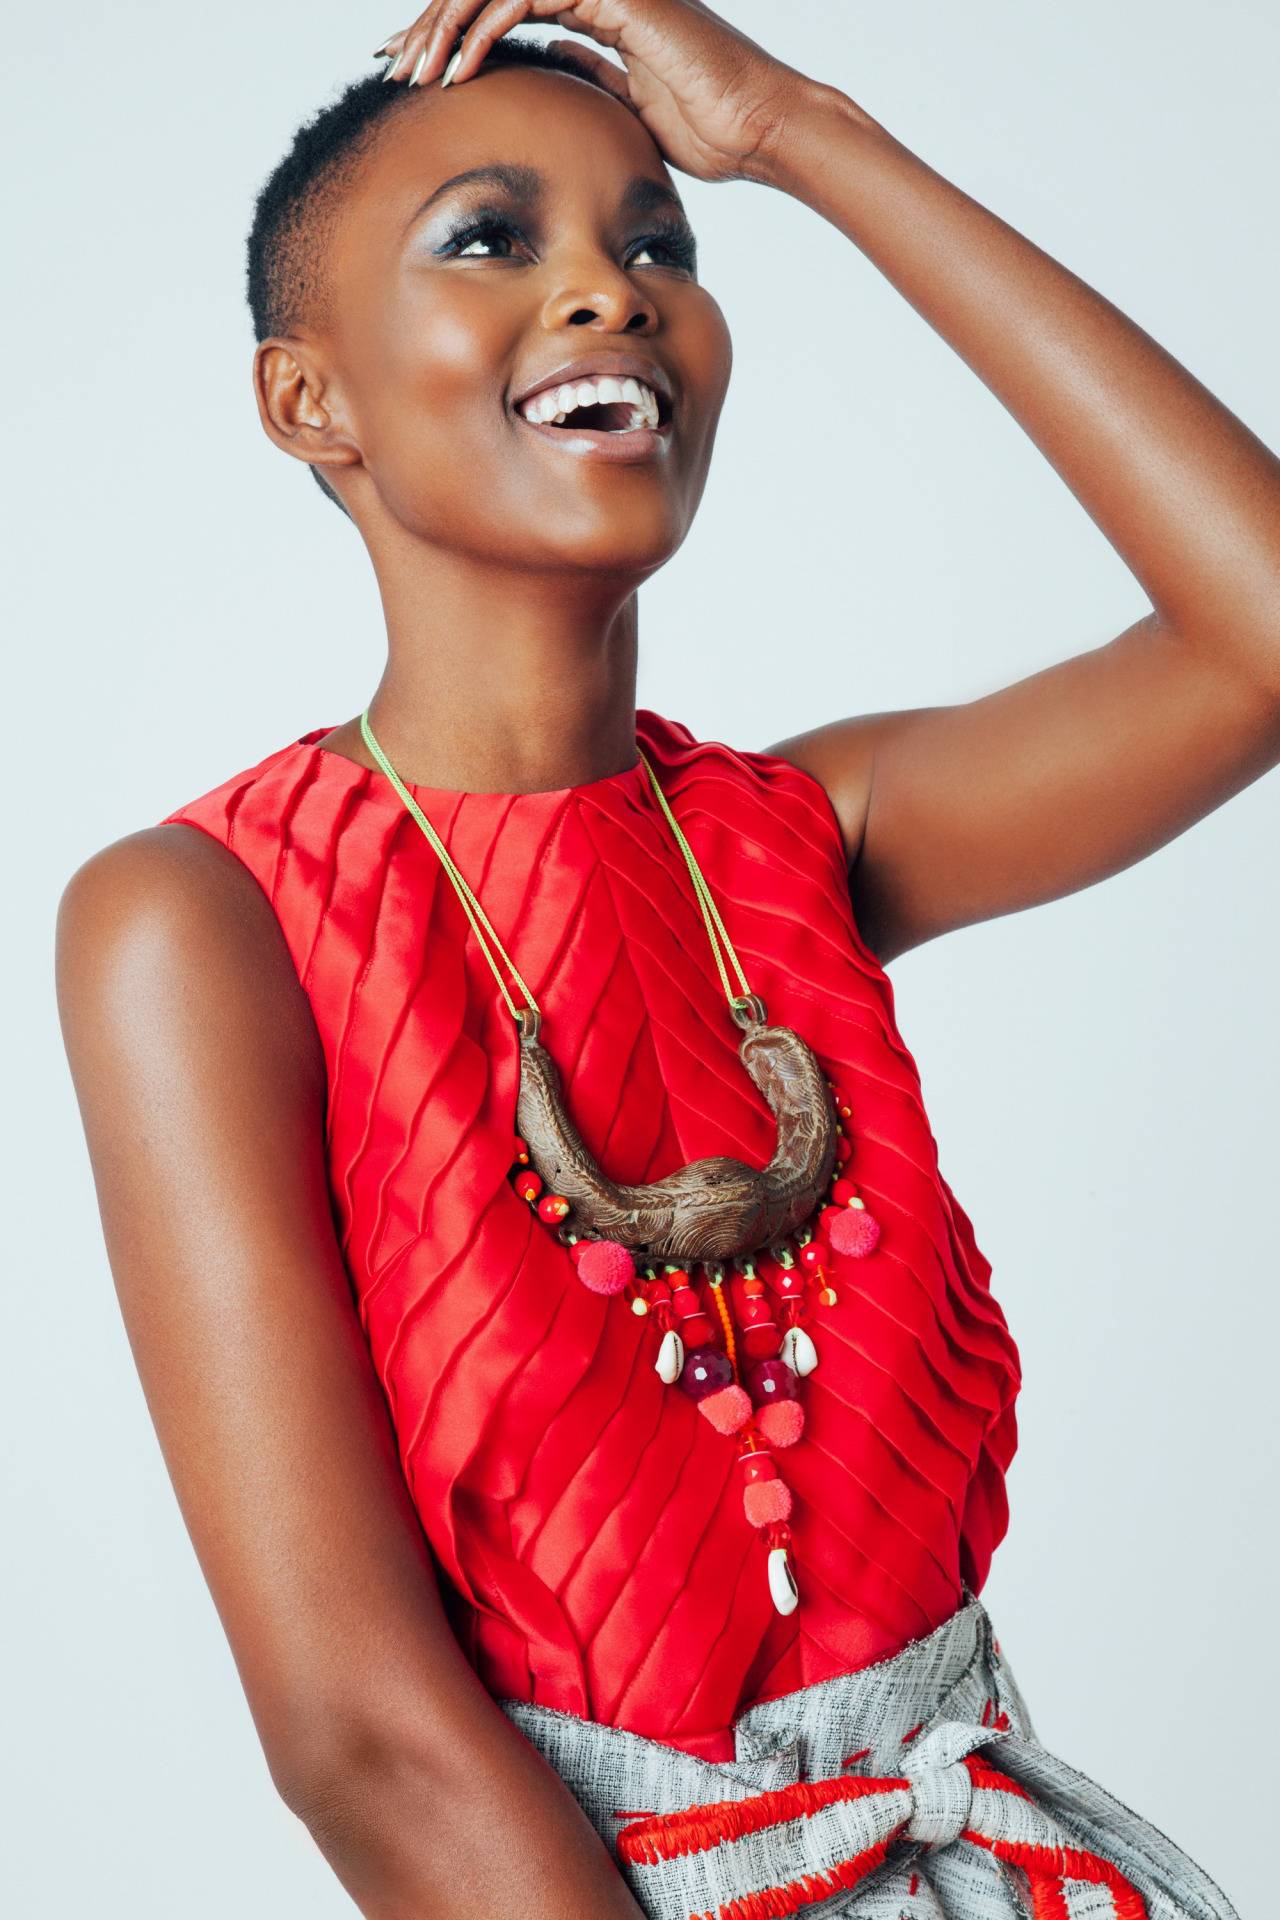 Flaviana Matata so beautiful with sleveless red top and big necklace